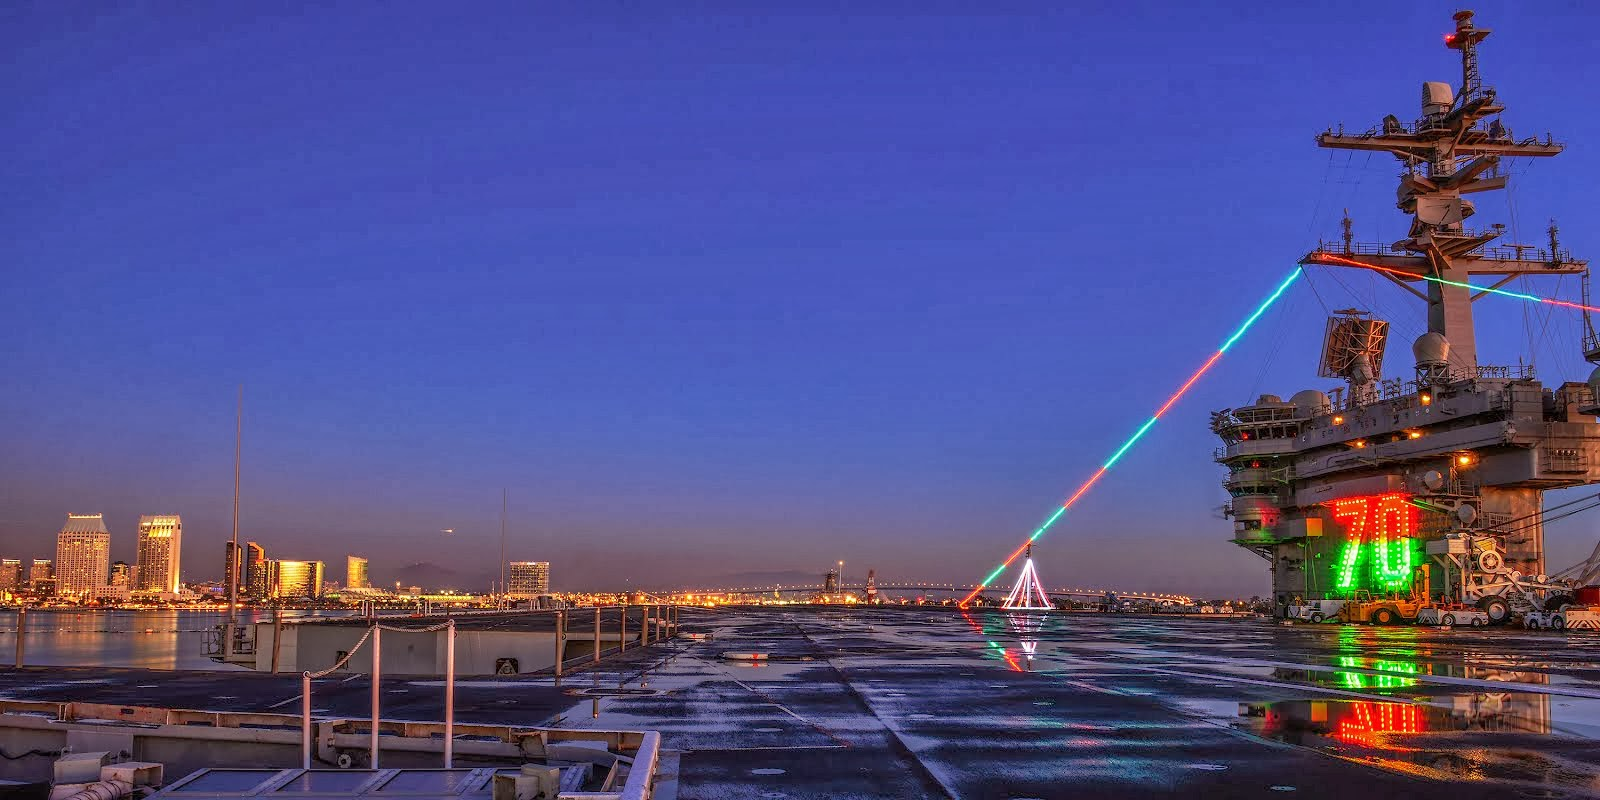 USS CARL VINSON DISPLAYS HOLIDAY LIGHTS